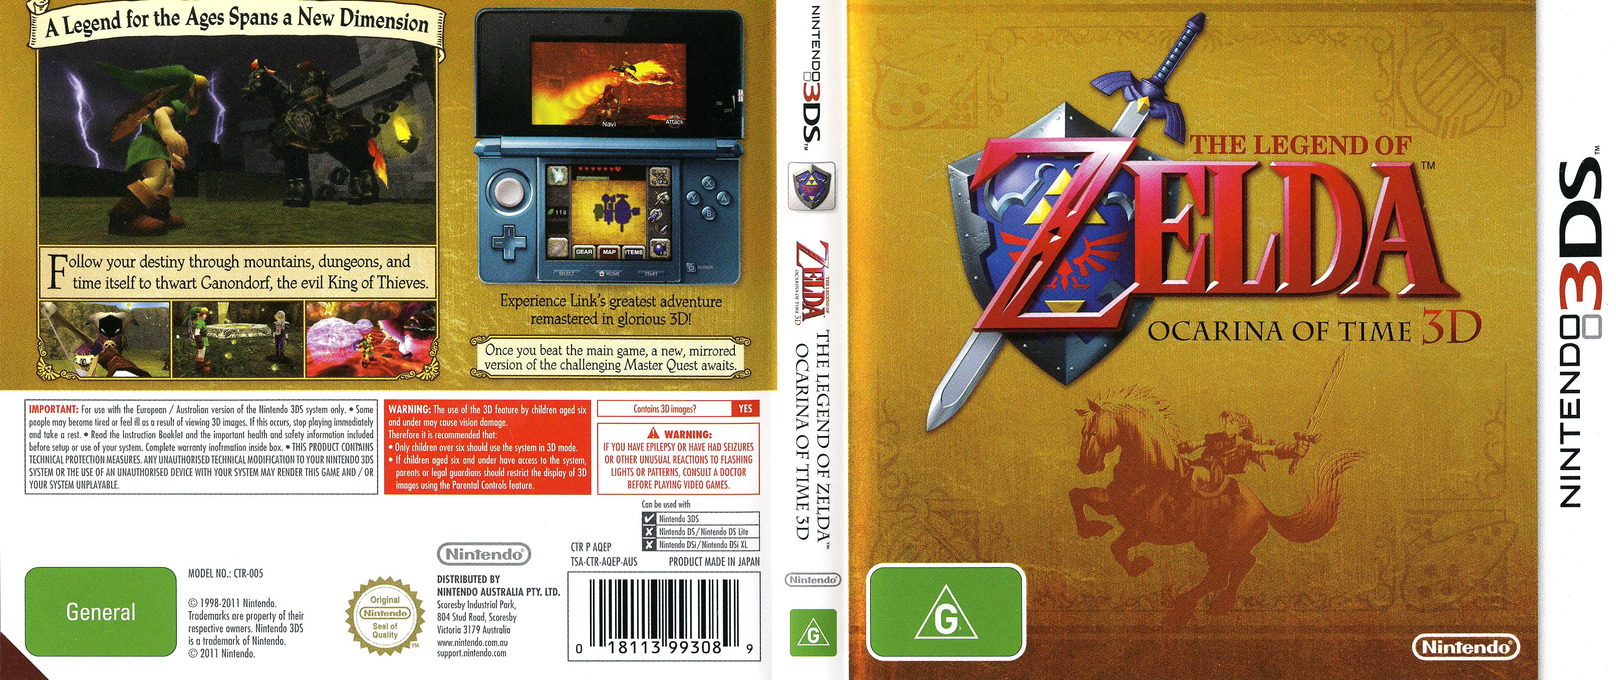 Aqep The Legend Of Zelda Ocarina Of Time 3d